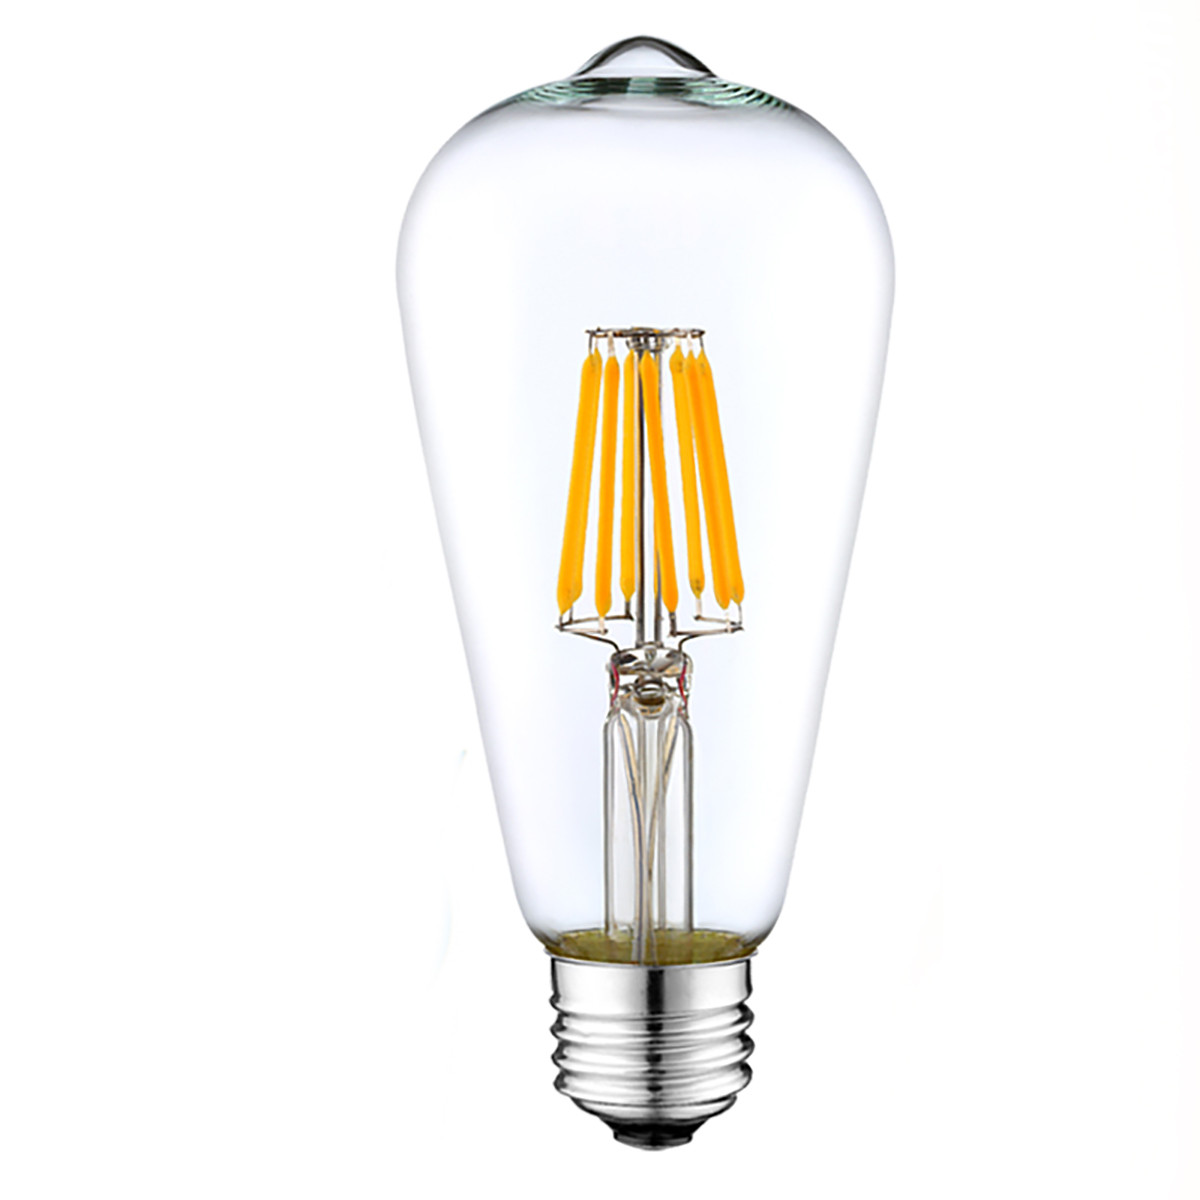 8W Filament LED T-Shape Light Bulb Light ST48 Chandelier Bulb with E26 Base 80W Equivalent Halogen Replacement